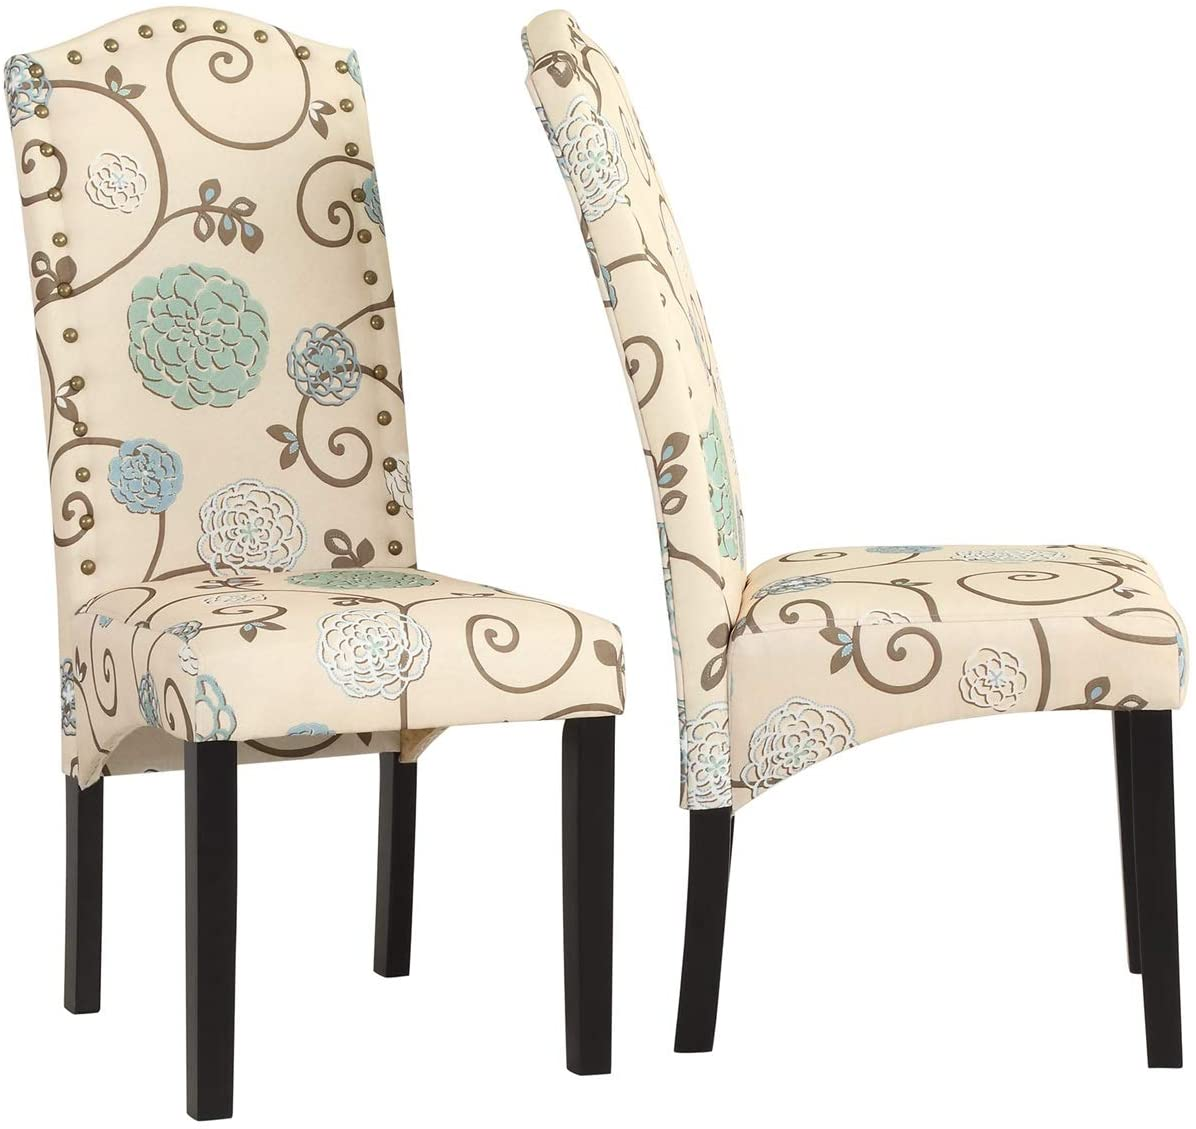 XIAOTIAN Floral Contemporary Dining Chairs,with Sturdy Wood Legs,Beige